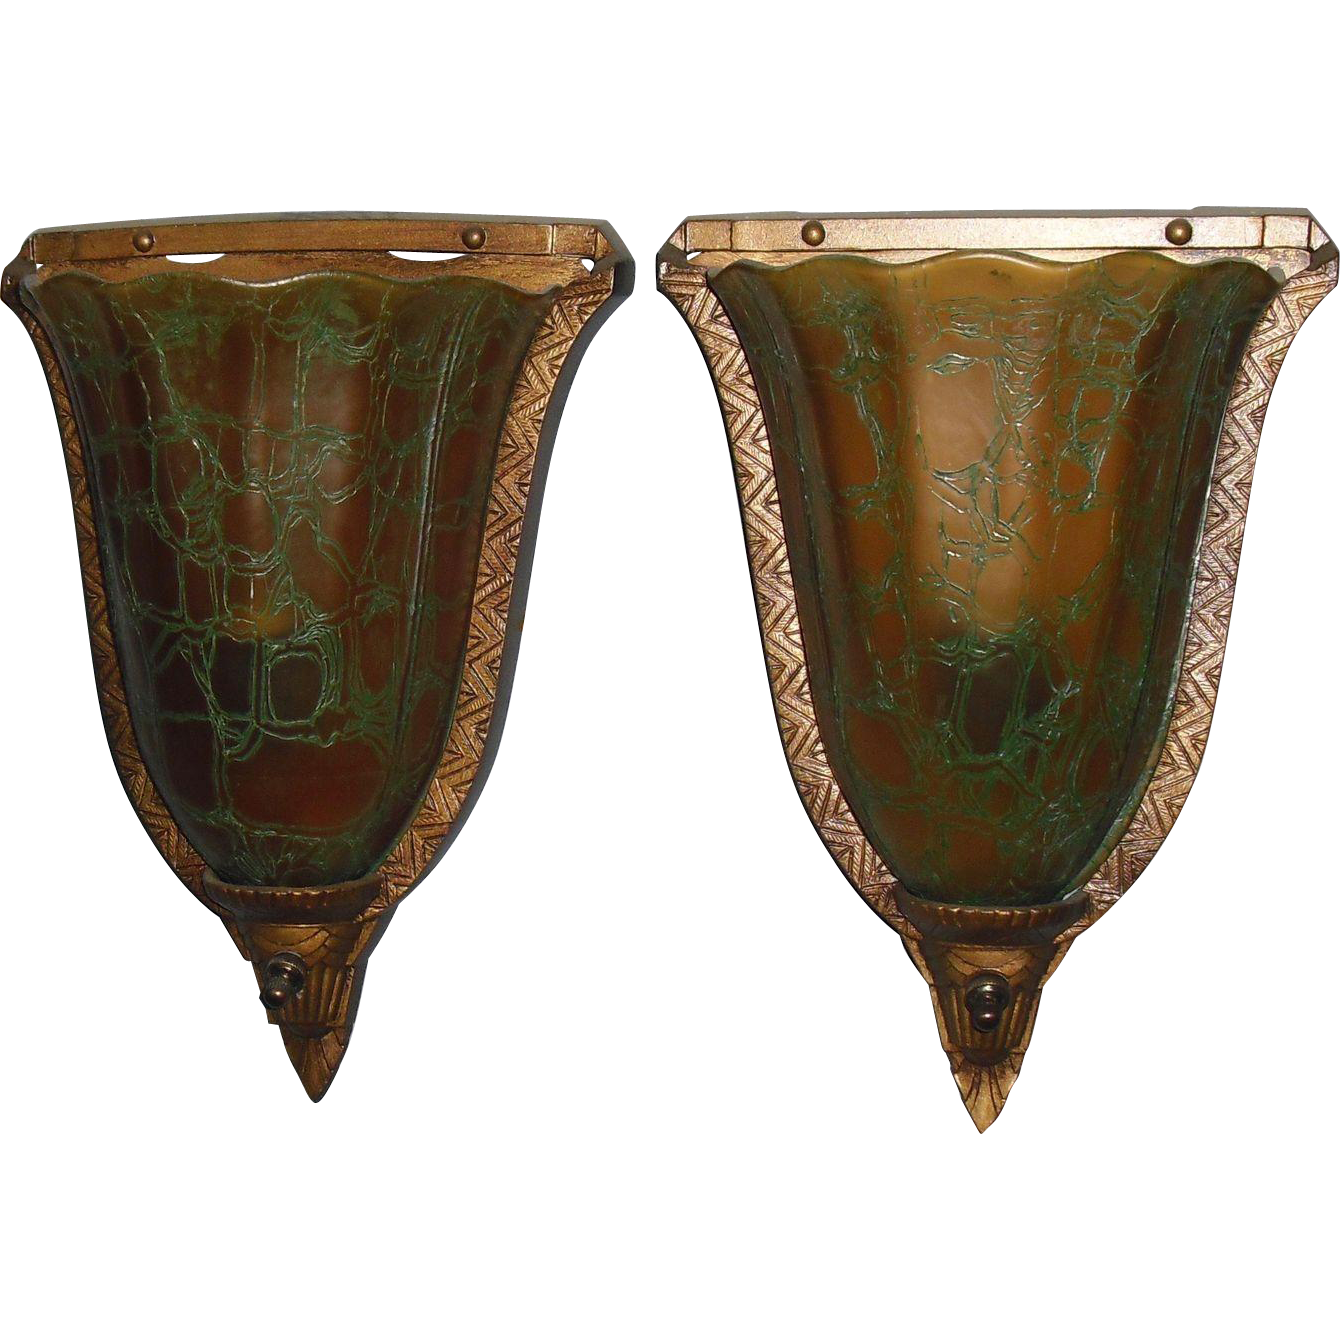 Antique Wall Sconce Glass Shades : Art Deco Slip Shade Wall Sconces - Crackle Glass Shades from sherlocksantiquelights on Ruby Lane